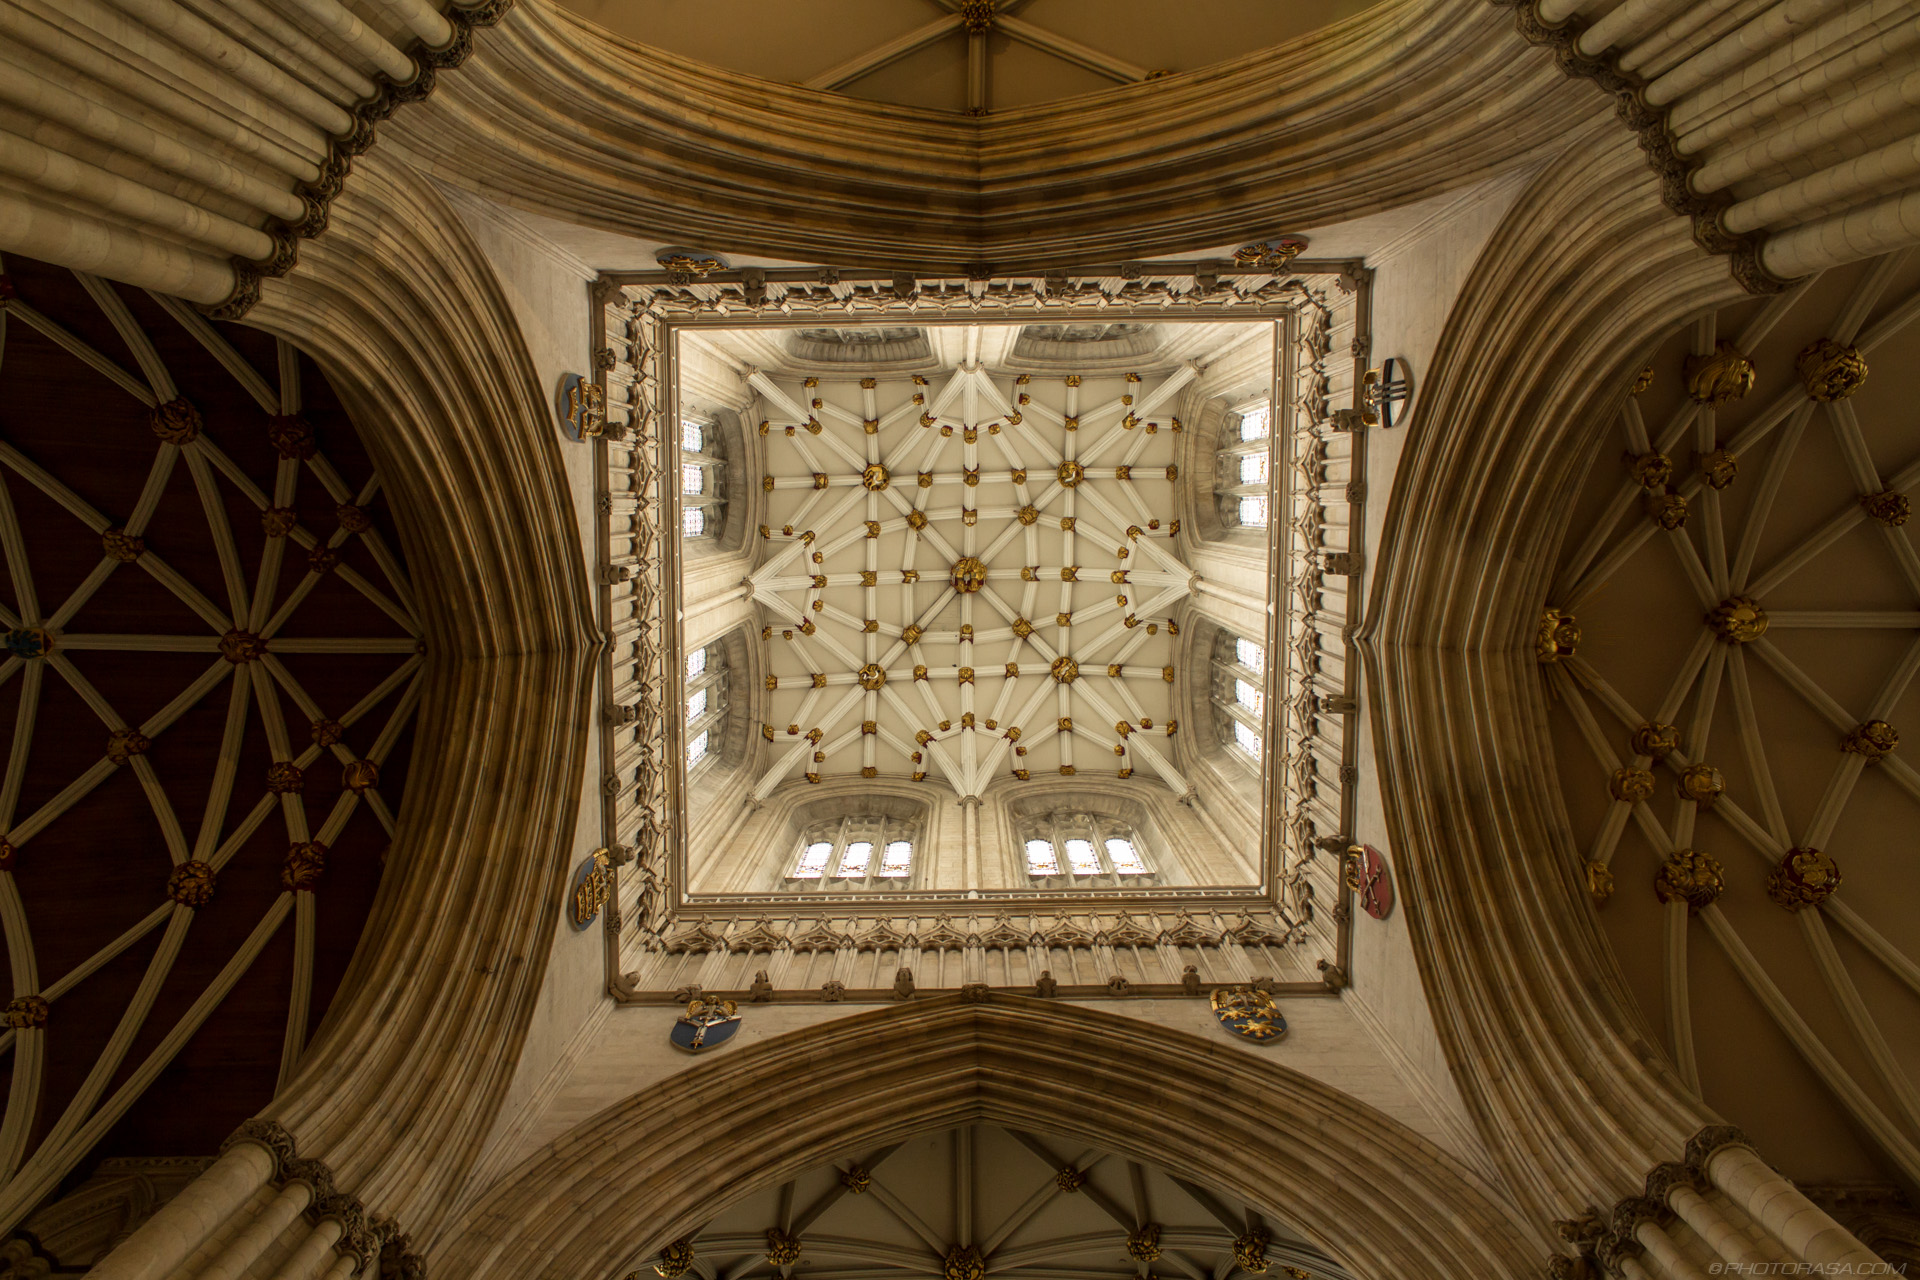 http://photorasa.com/yorkminster-cathedral/central-tower-from-below/